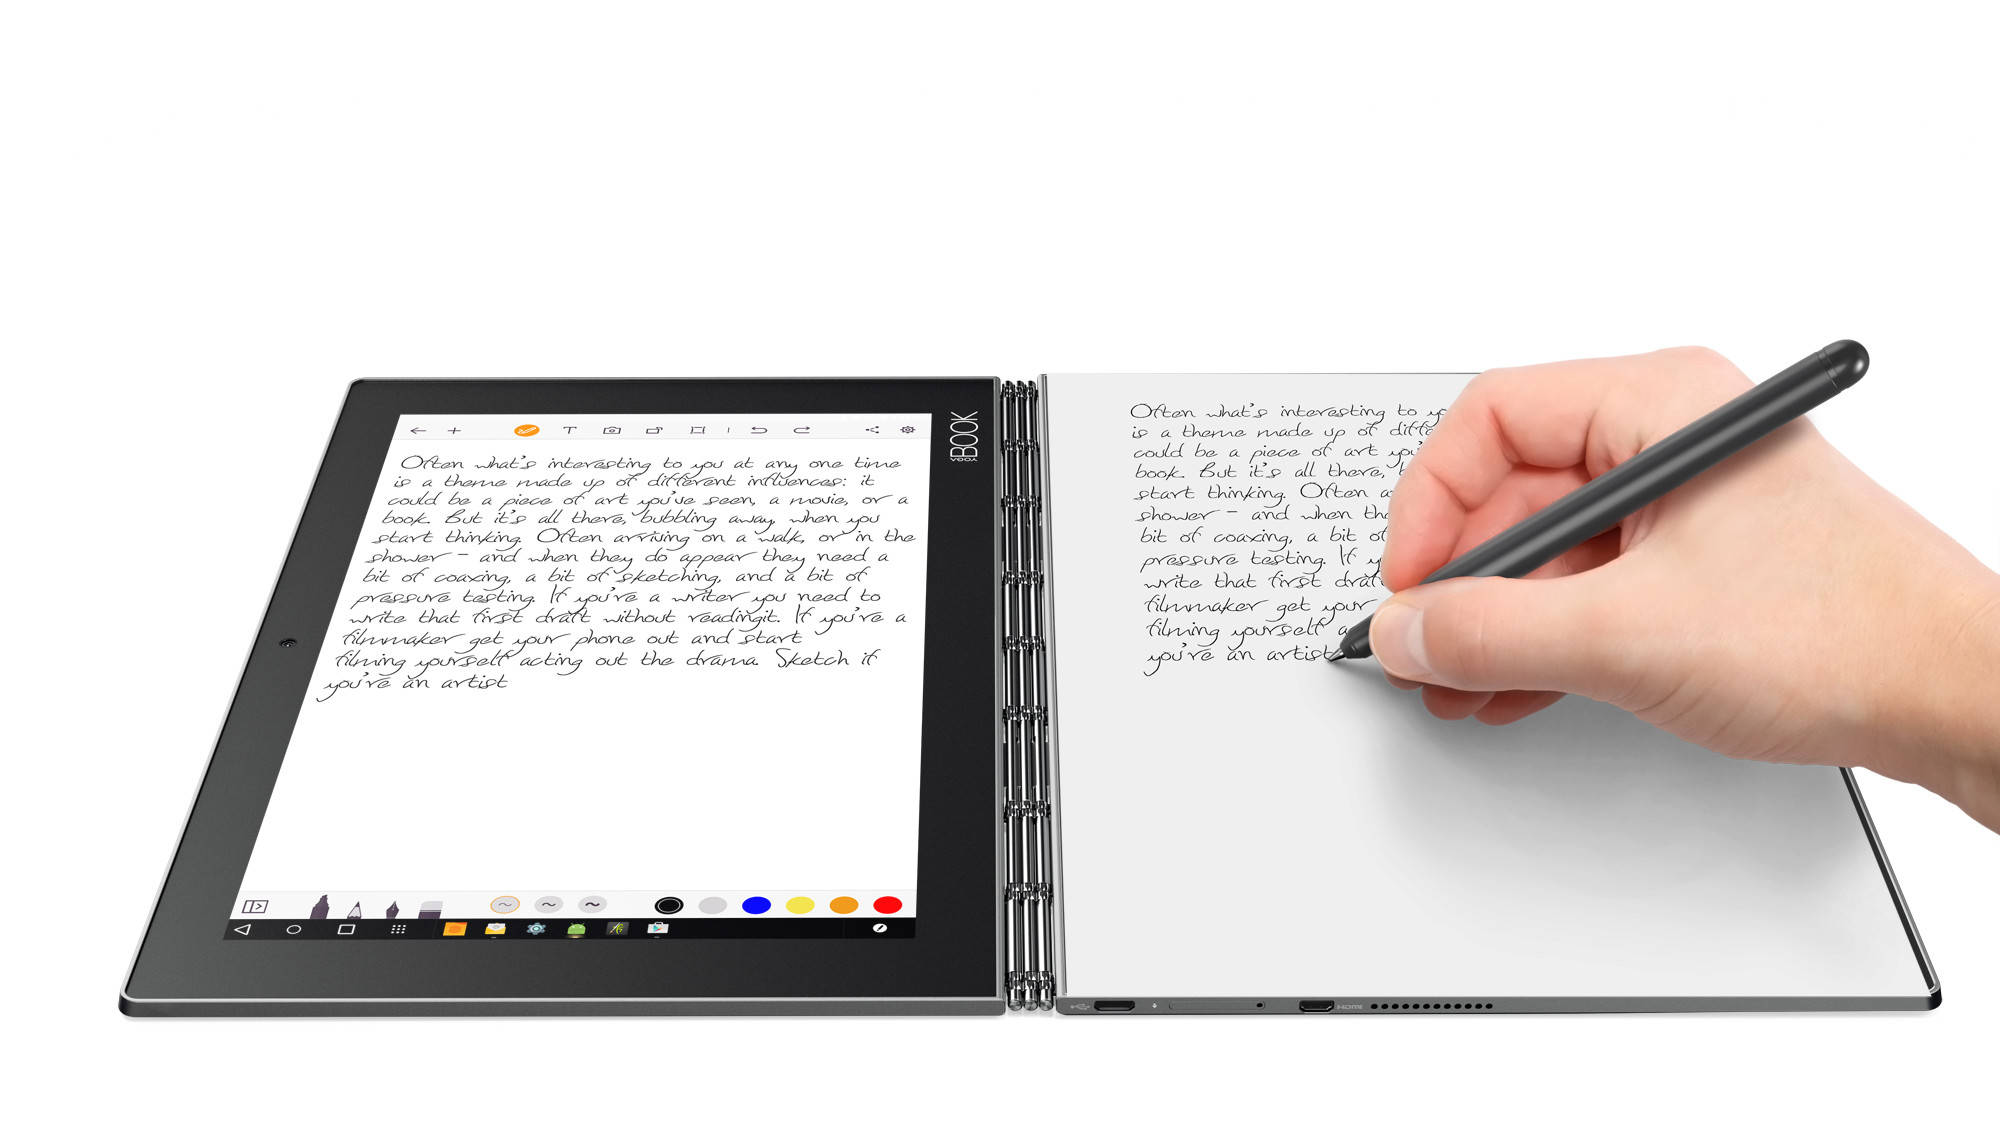 "Lenovo YOGA BOOK ANDROID Atom x5-Z8550 2,4GHz/4GB/64GB/10,1"" FHD/IPS/multitouch/CreatePad/Halo KBRD/WiFi/Android 6 šedá"